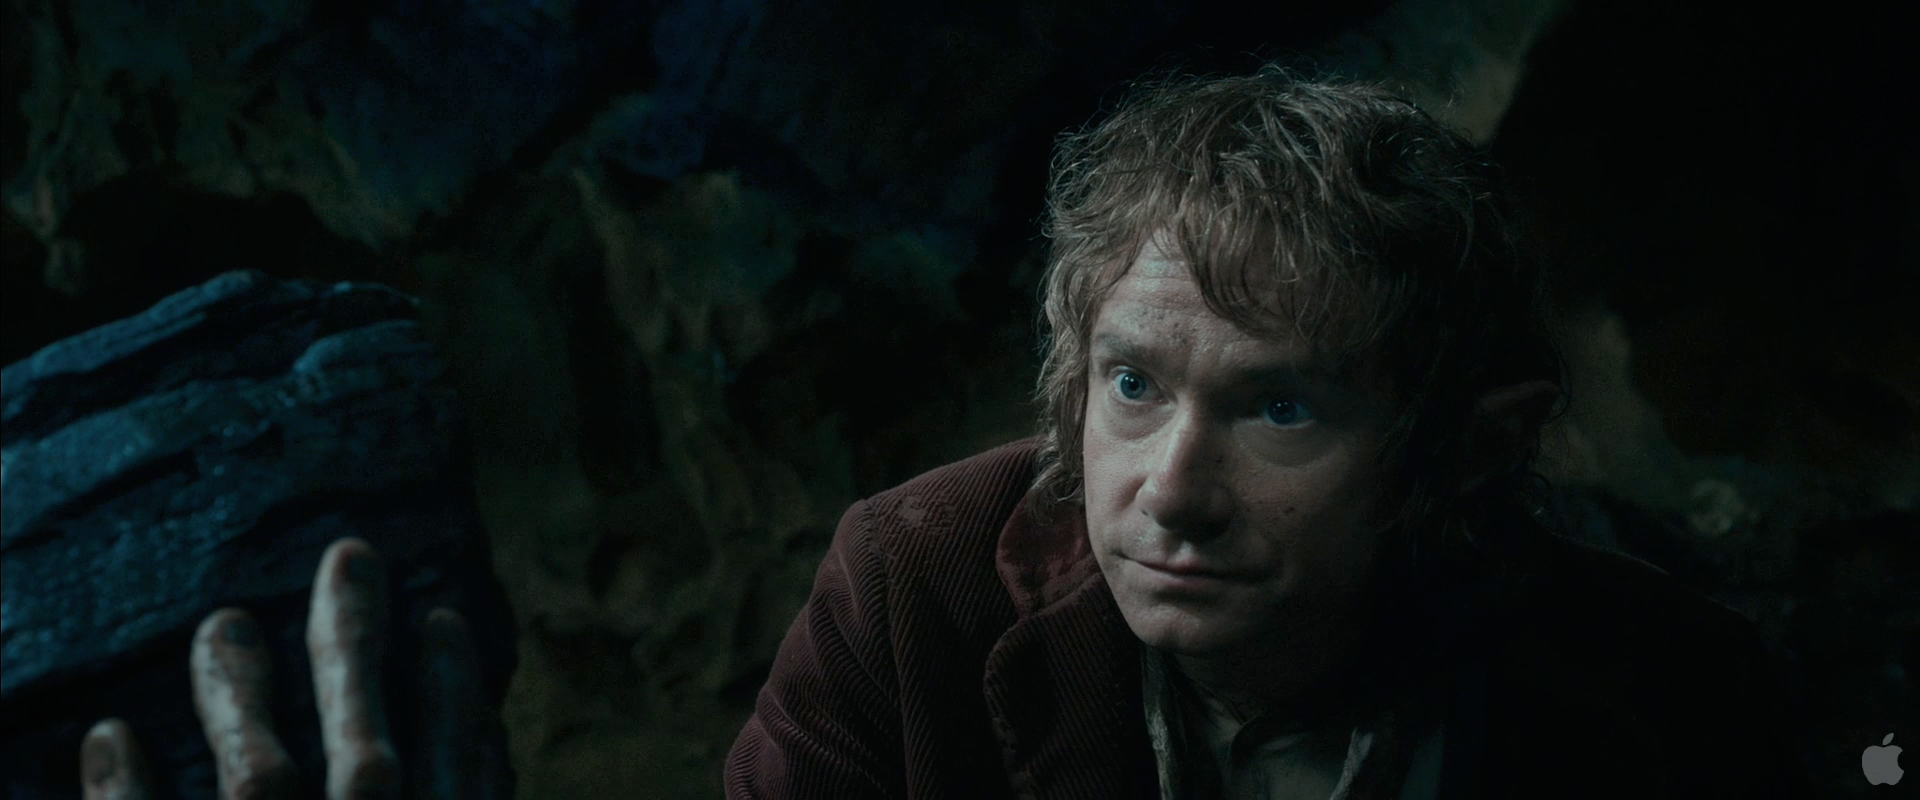 a literary analysis of bilbo baggins in the hobbit How to write literary analysis  the hole occupied by the hobbit known as bilbo baggins is called bag end  bilbo: character analysis.